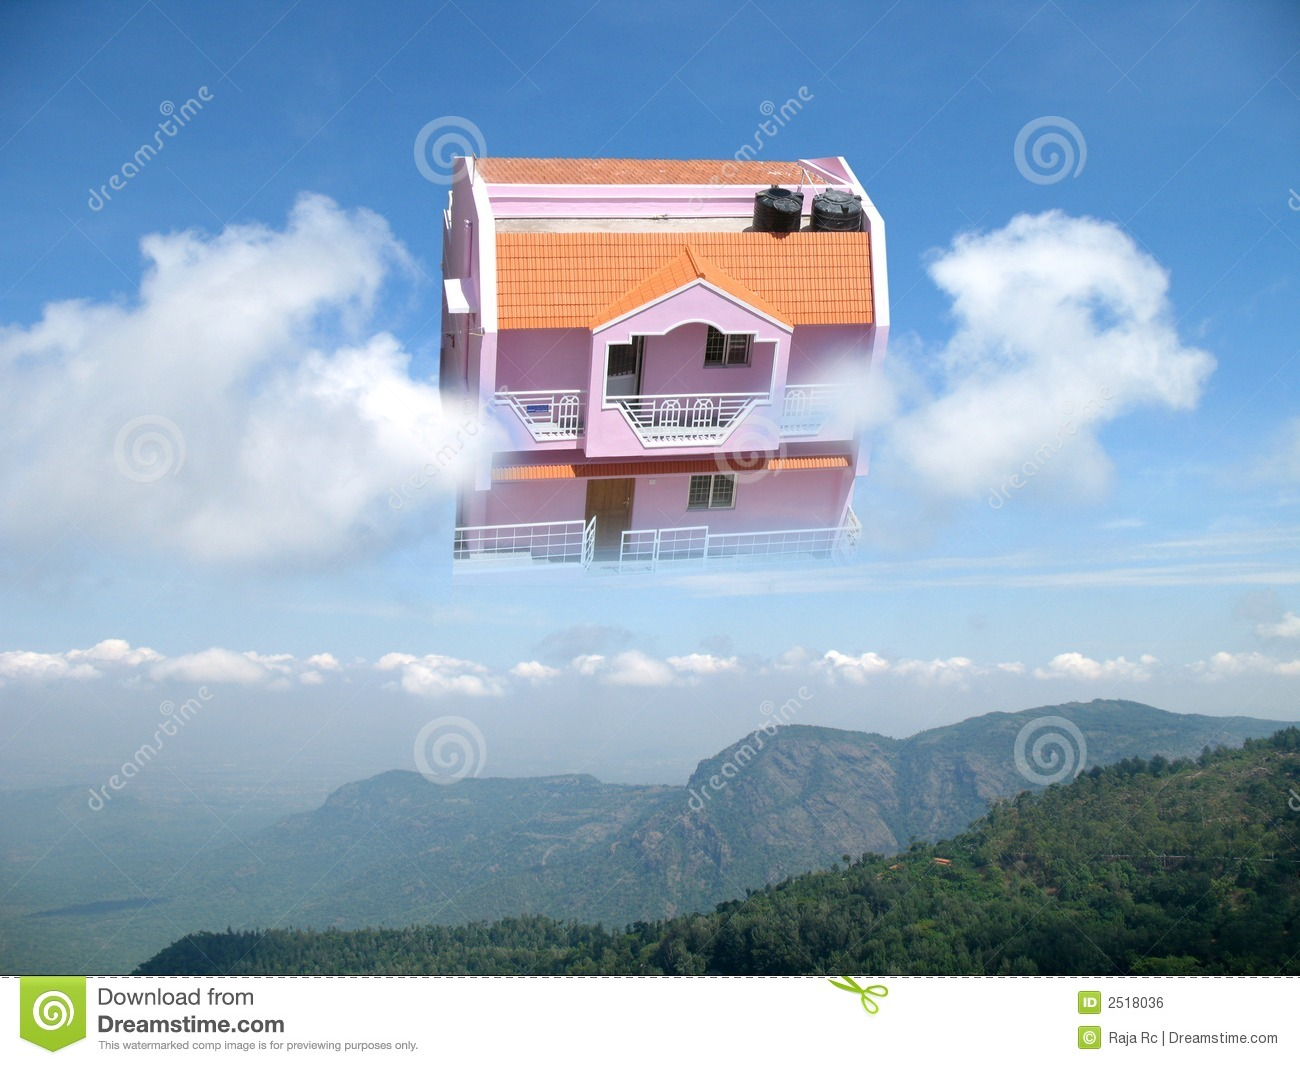 Dream house royalty free stock image image 2518036 for Free house photos